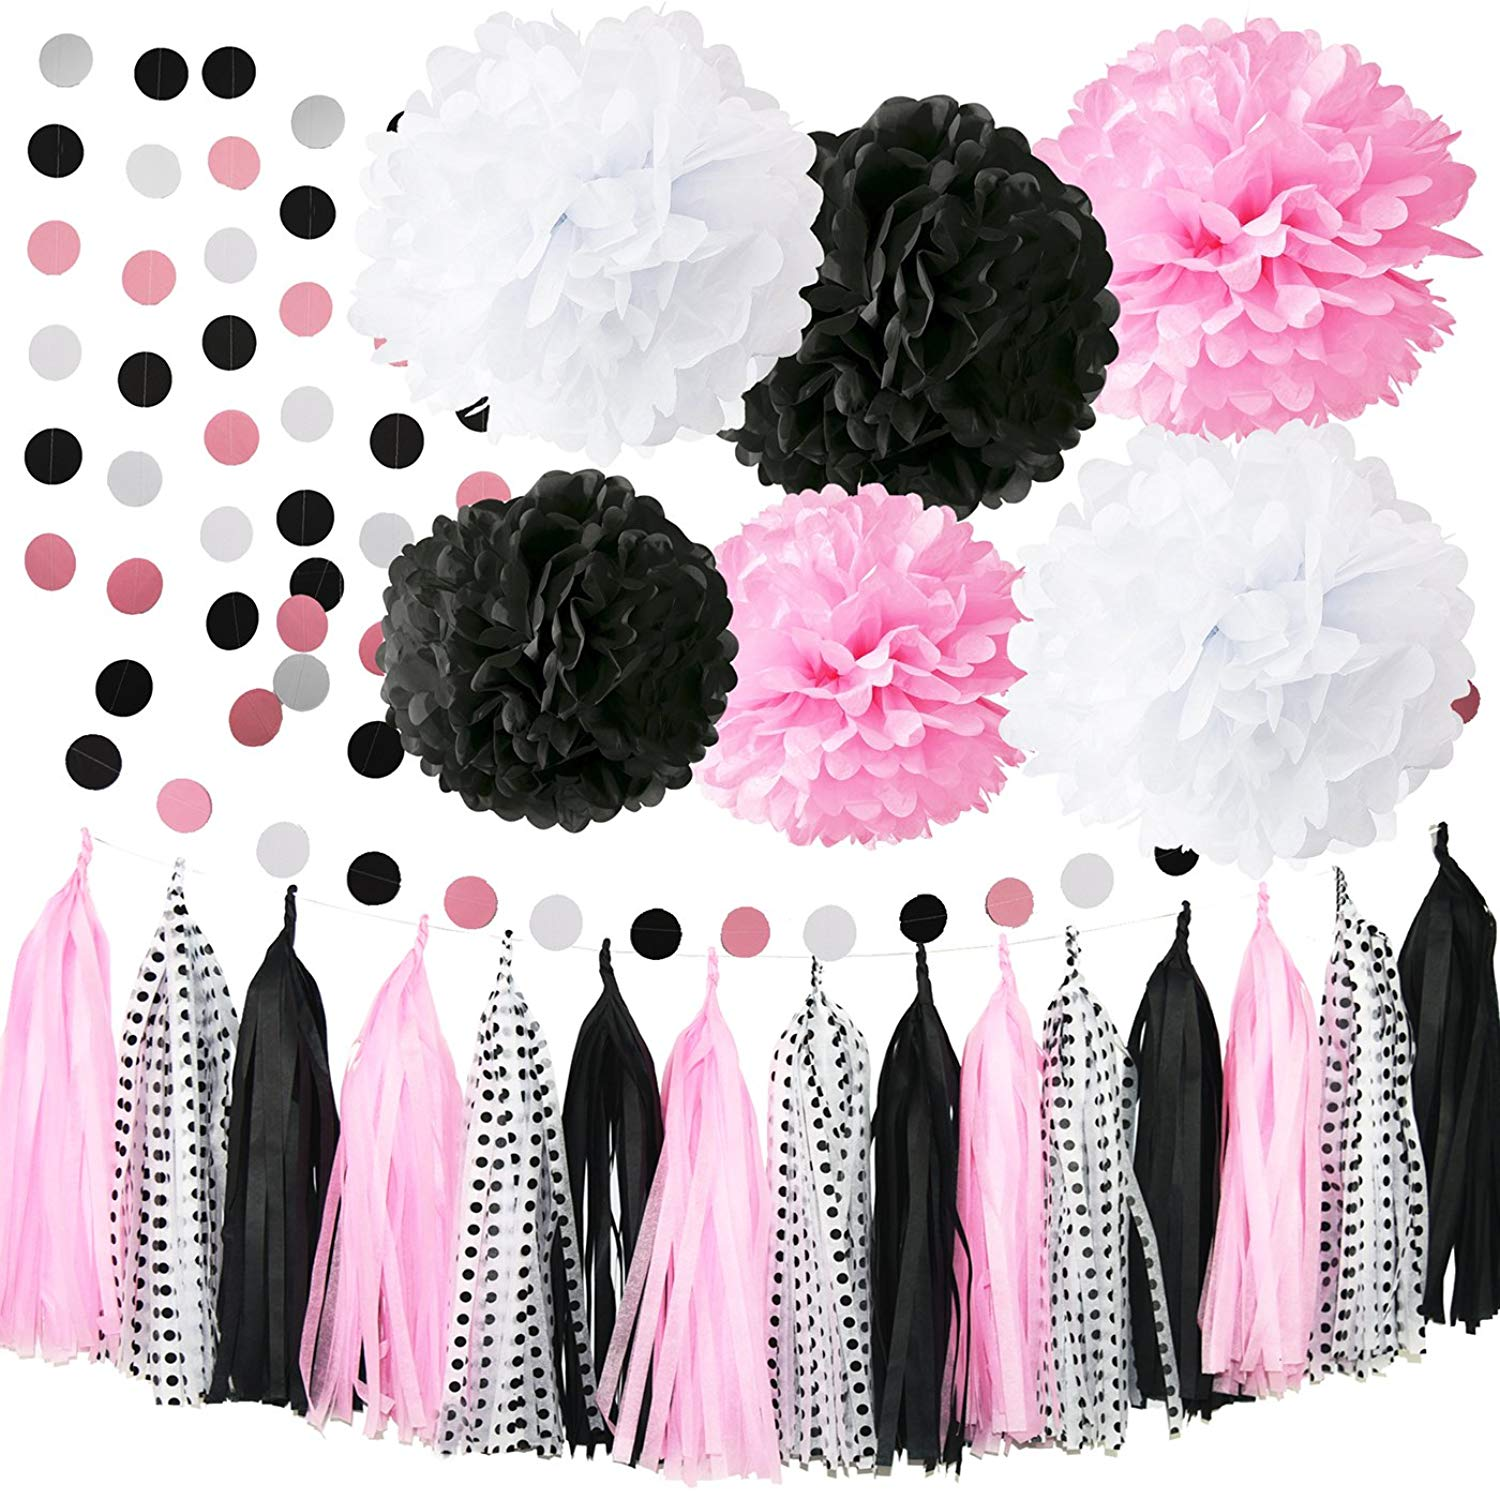 Minnie Mouse Party Decorations First Birthday DecorationsPink White Black Tissue Pom Circle Garland Tassel Sheets DIY